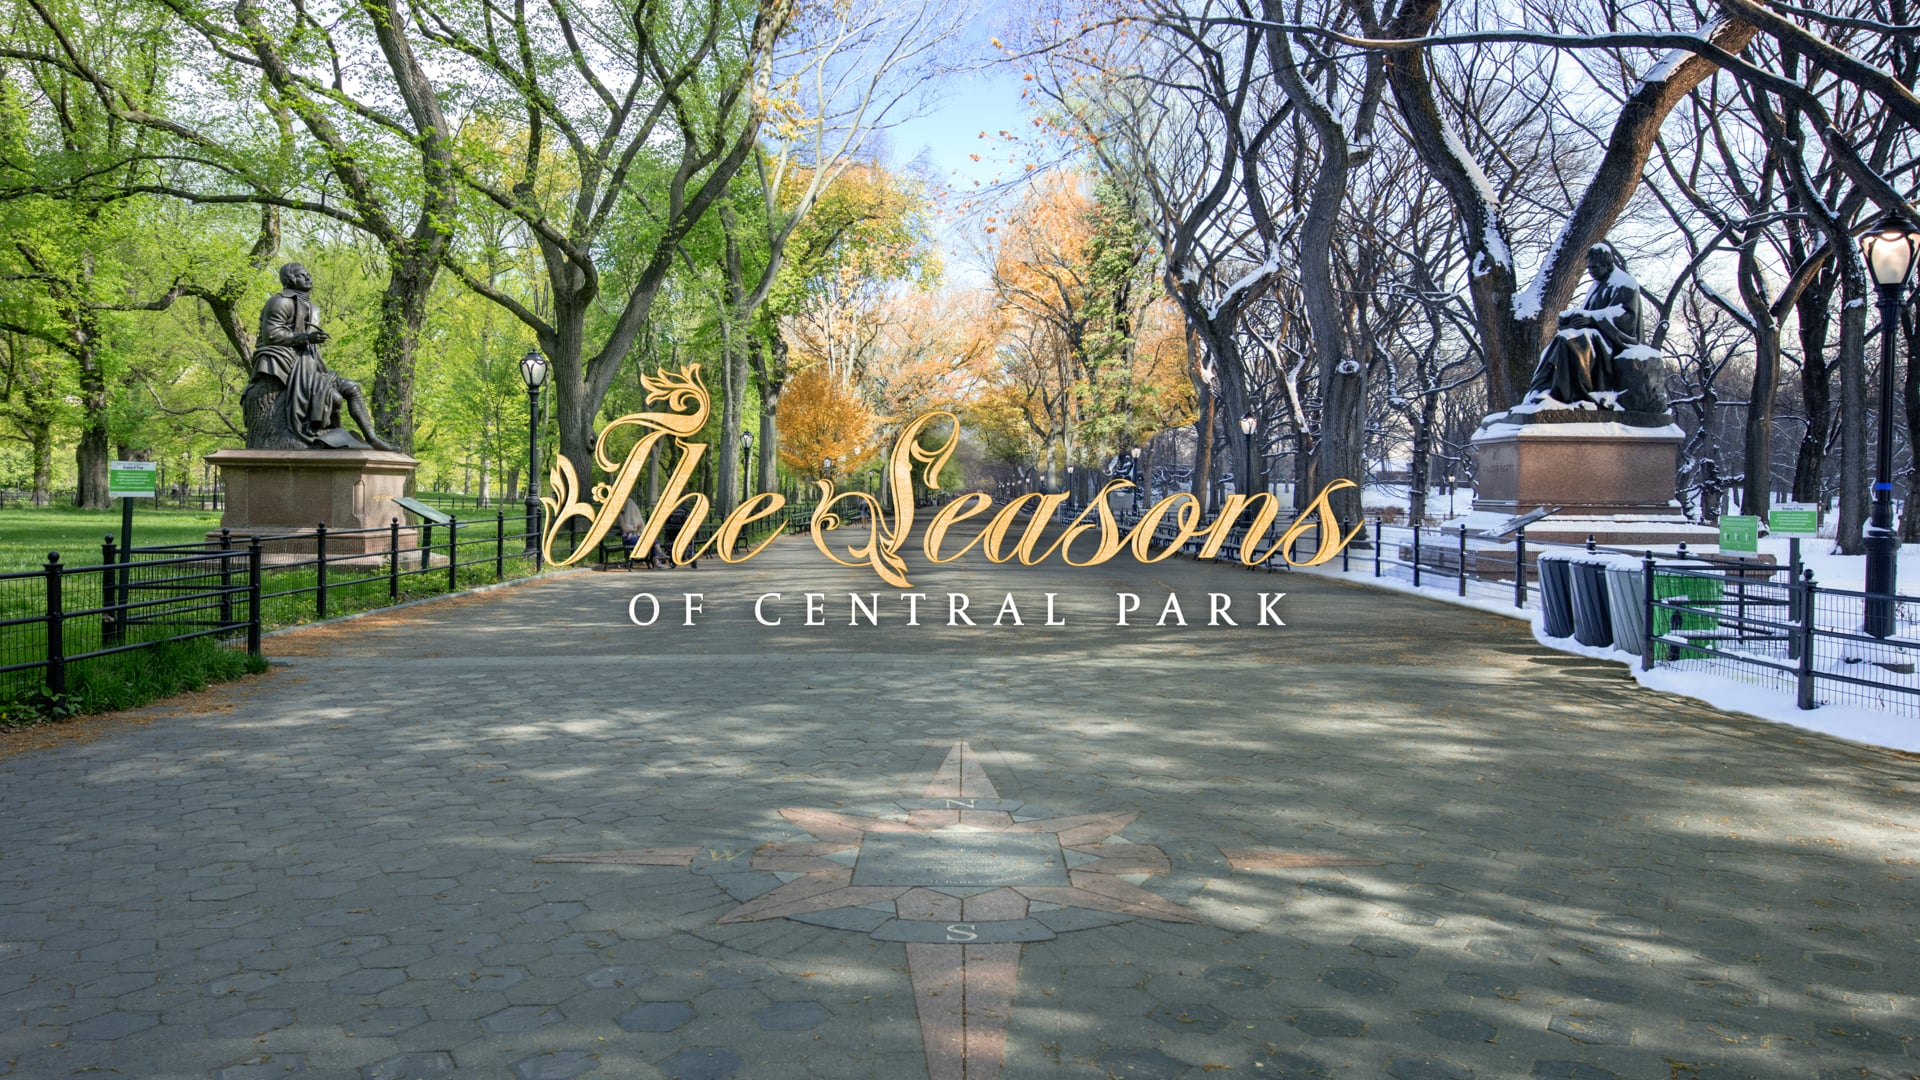 The Seasons of Central Park - 8K